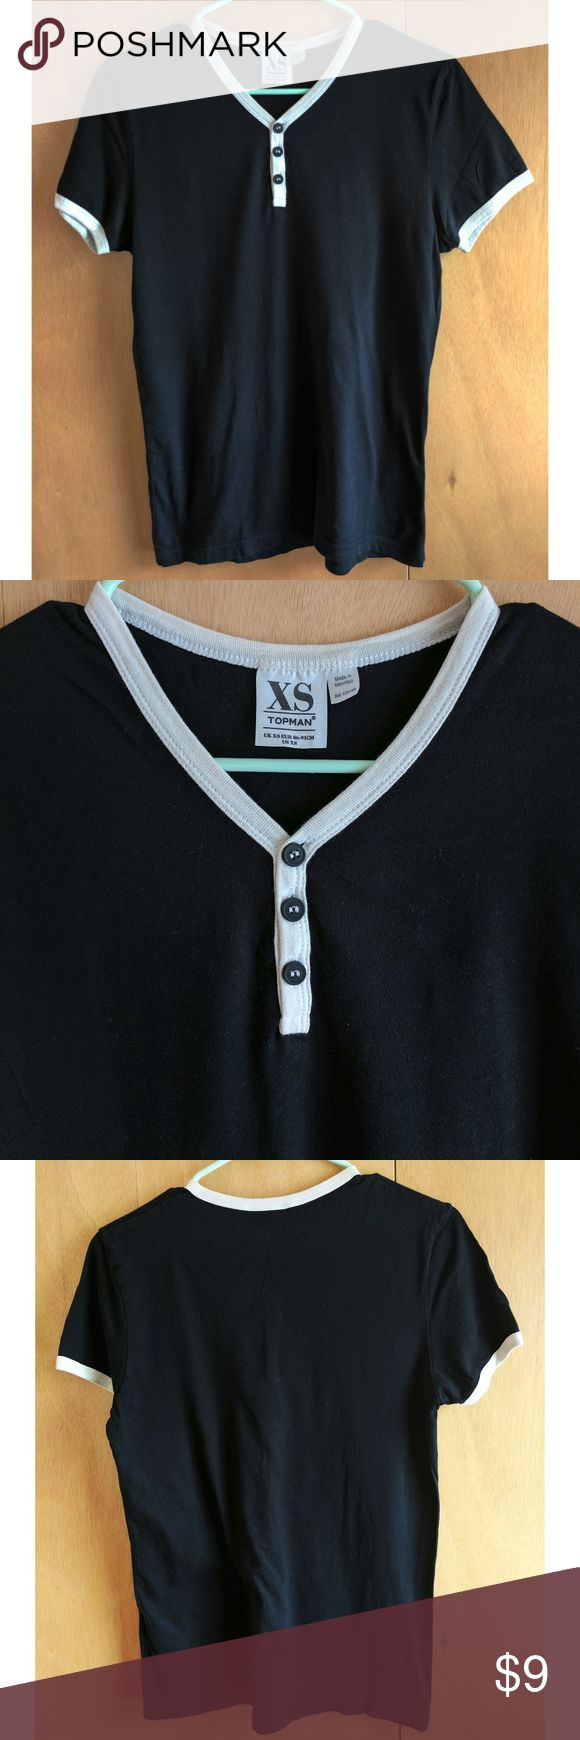 Topman Black Baseball Tee Very soft cotton, features high contrast details on collar and sleeves, as well as 3 buttons on the front collar. Topman Shirts Tees - Short Sleeve